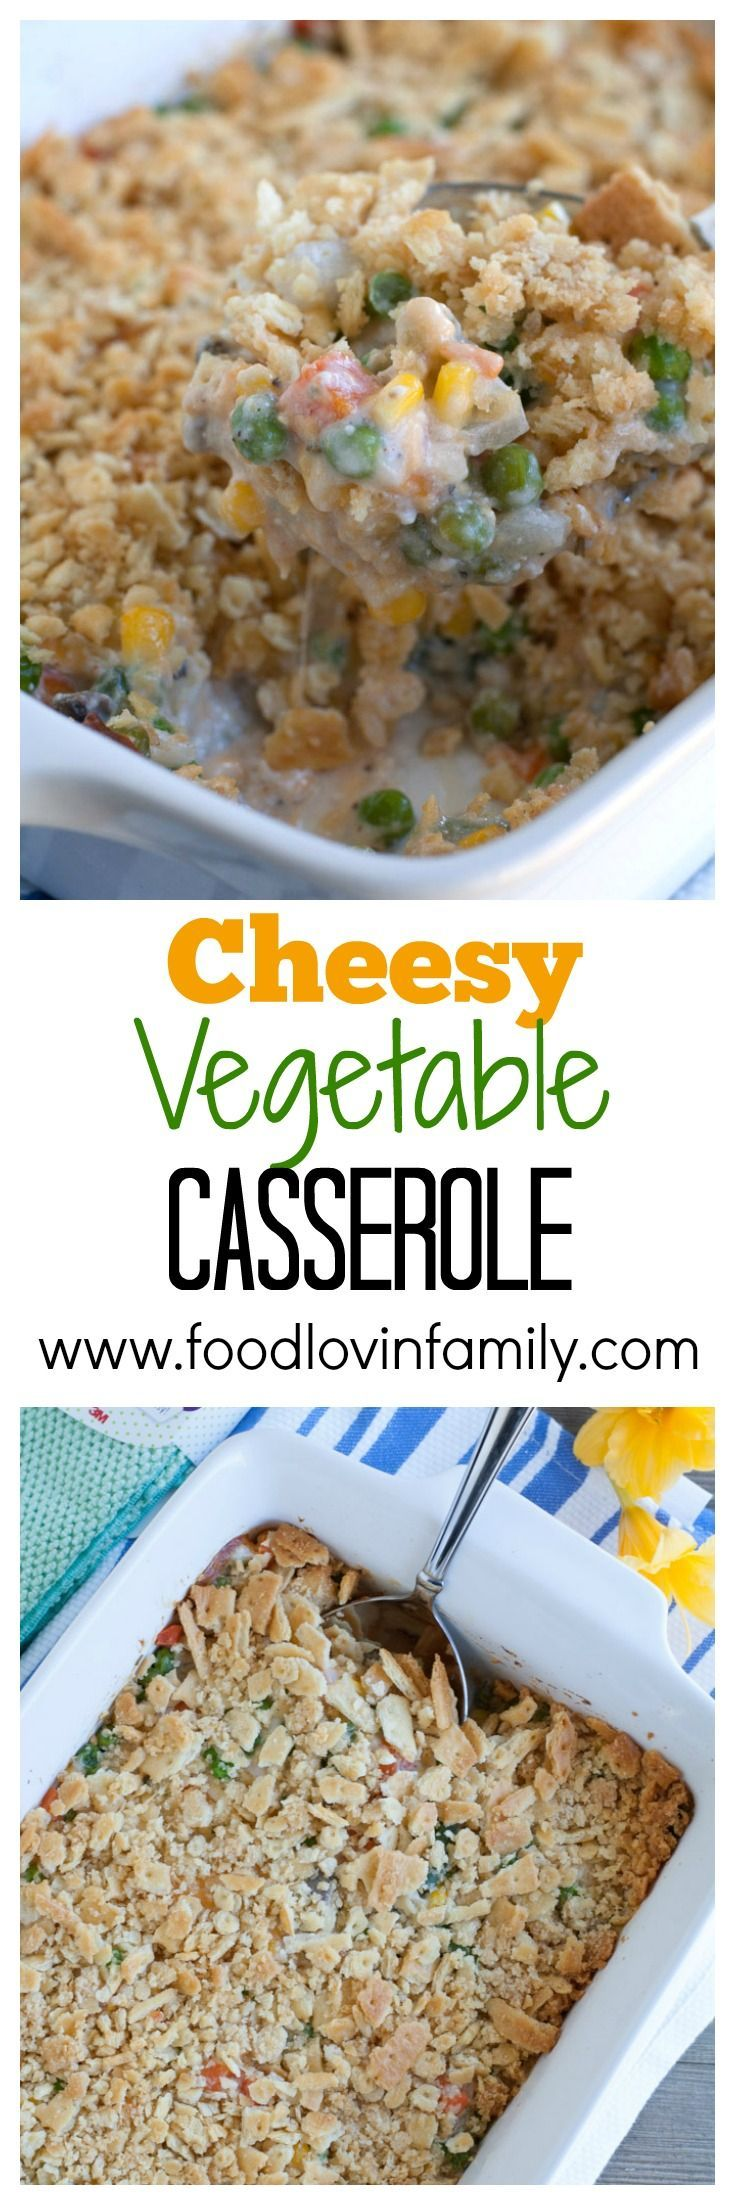 Cheesy Vegetable Casserole is a crowd favorite. The ultimate side dish filled with veggies, cheese, and topped with crushed buttery crackers. #ad #MySpringClean #TeamDishCloth